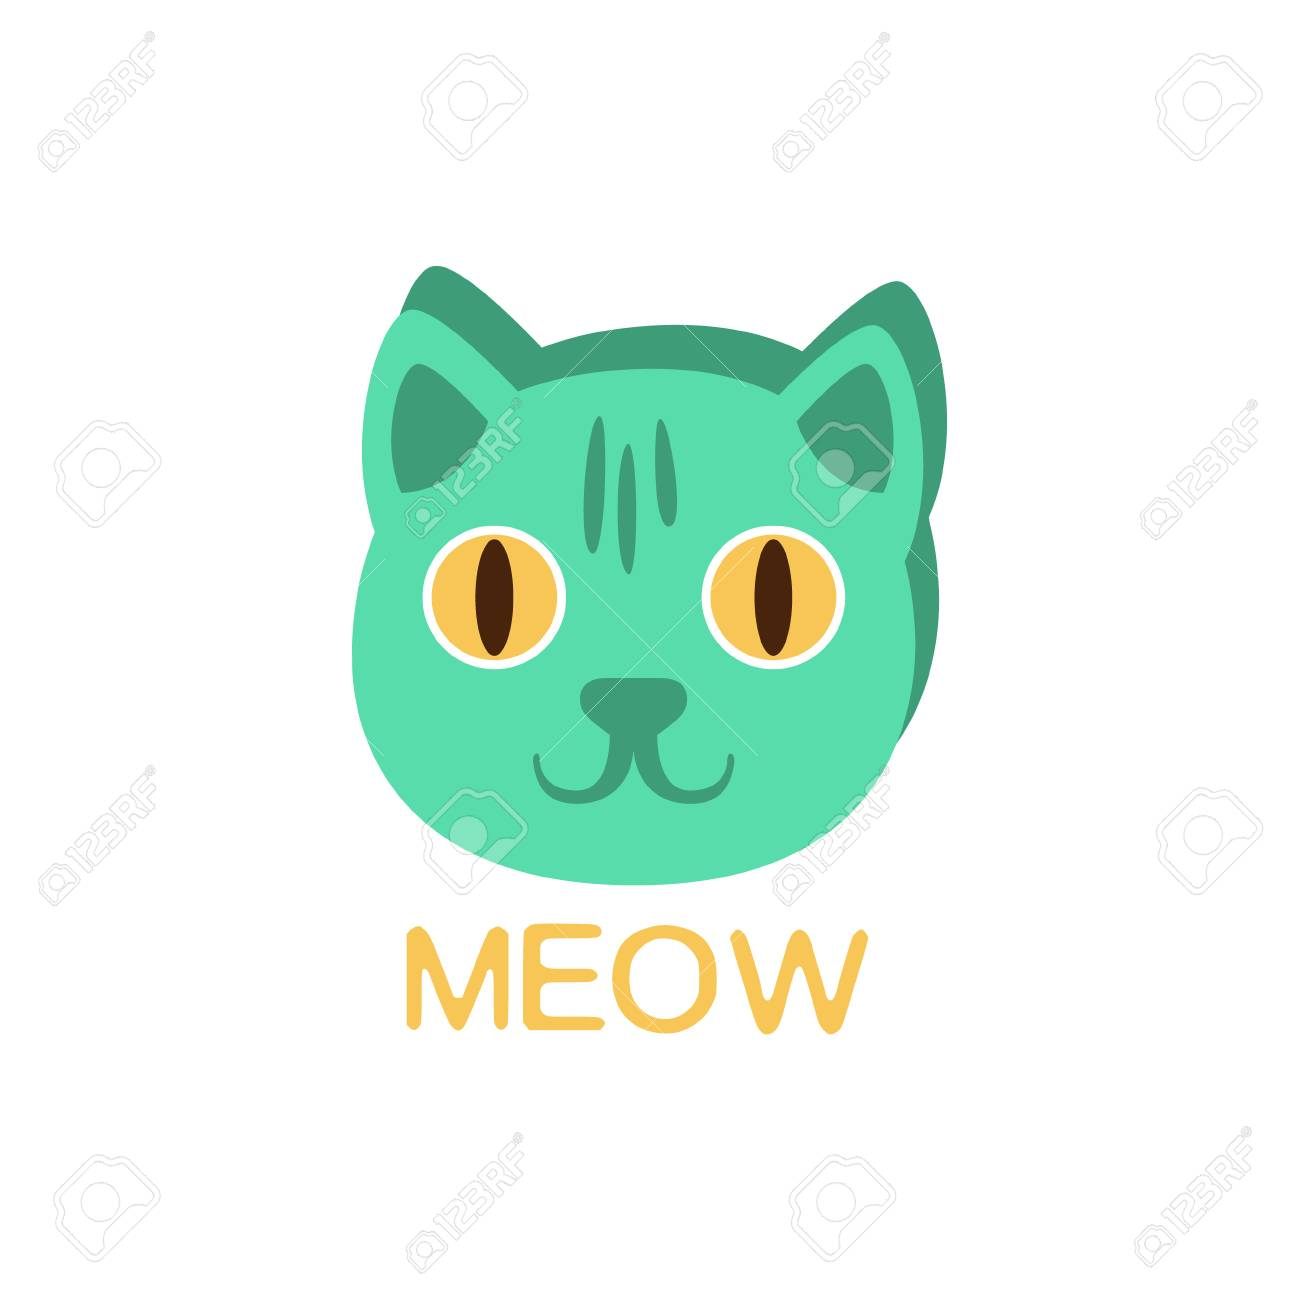 Meow And Cat Face Word And Corresponding Illustration Cartoon